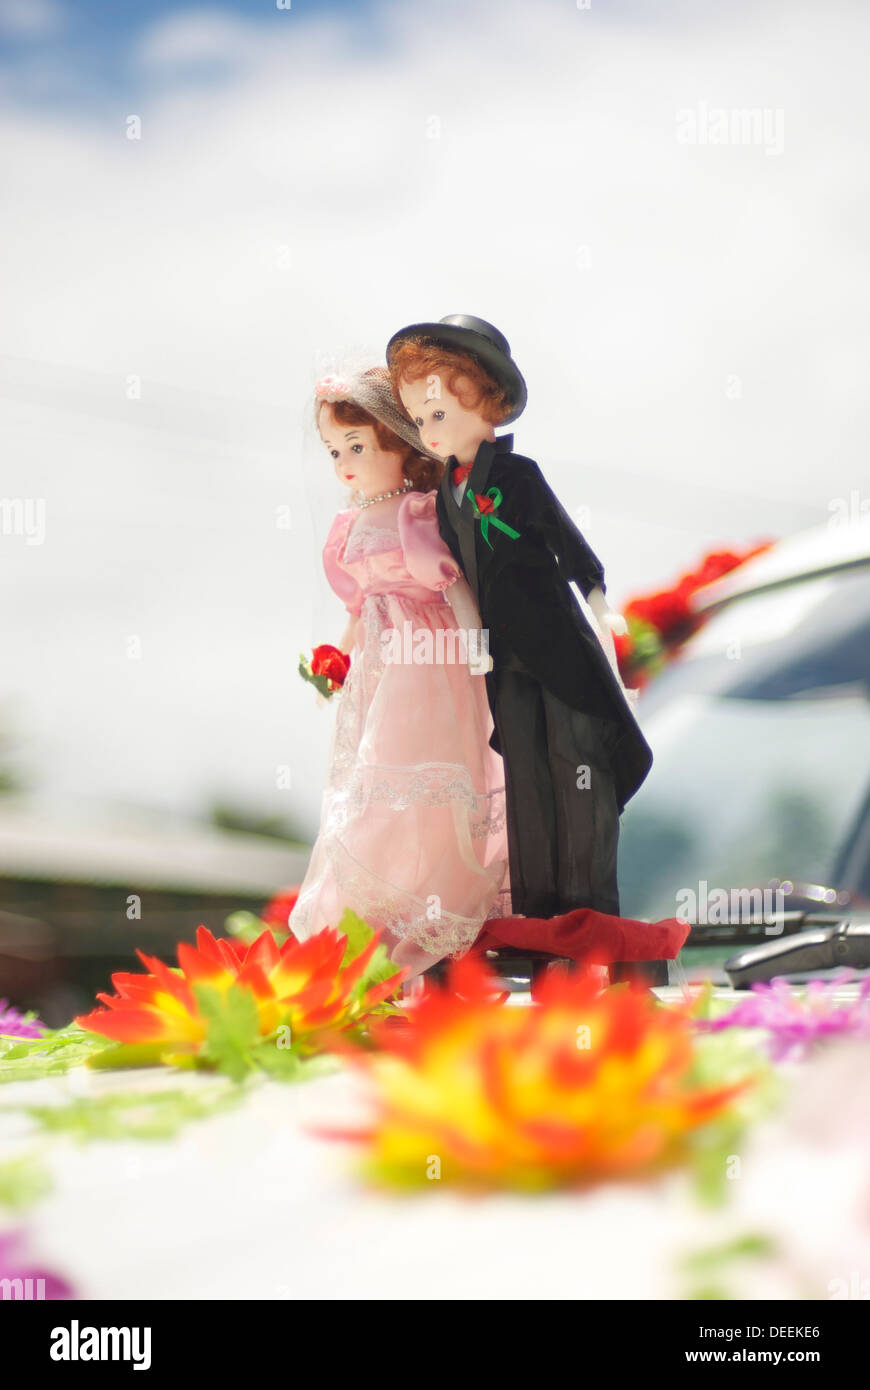 Miniature smart couple based on front car ready for wedding with flowers on their feet - Stock Image